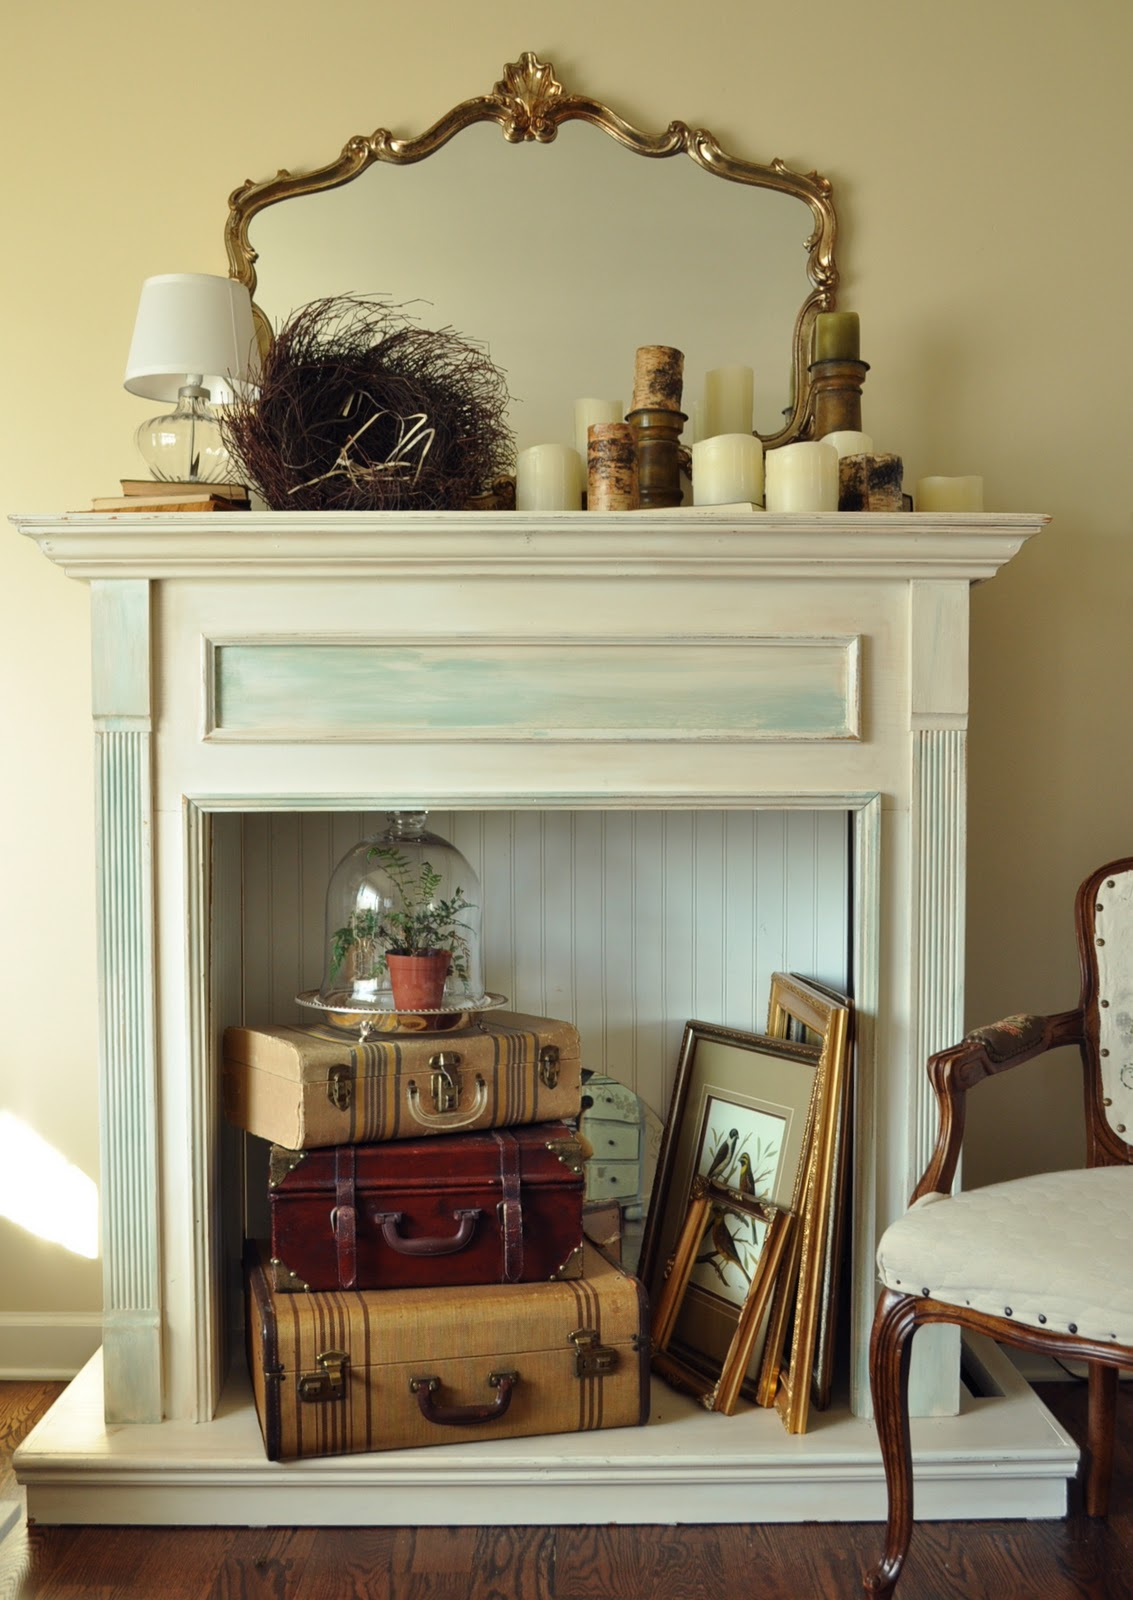 How to style a faux fireplace mantel